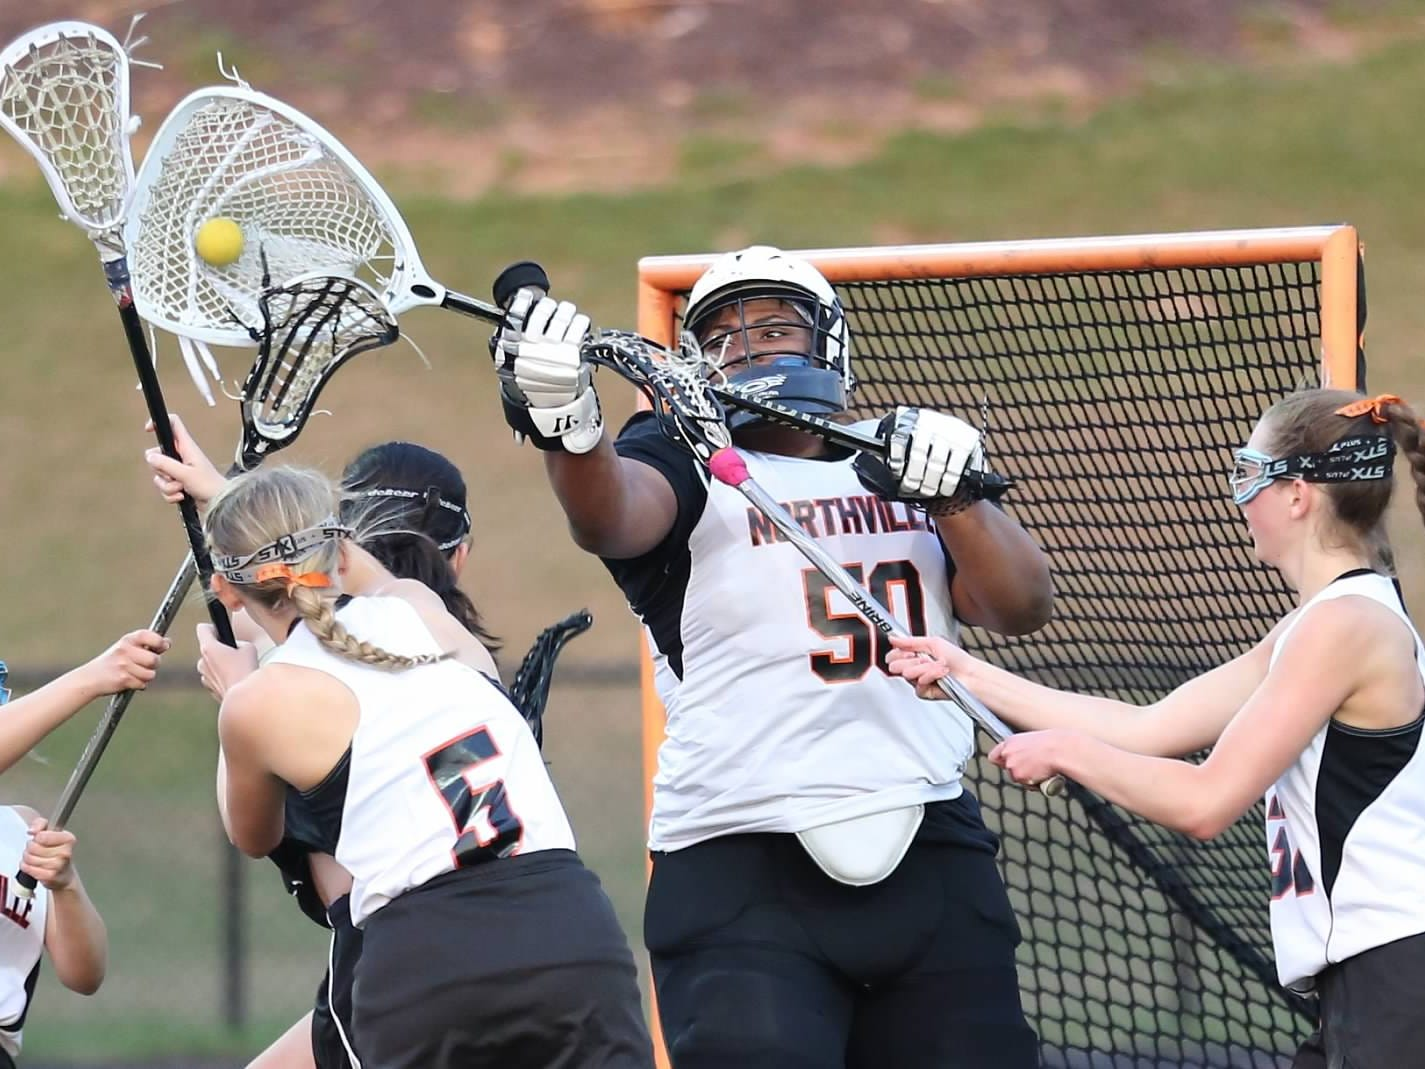 Northville goalie Gabby Goree (middle) makes a save late in the match surrounded by fellow defenders Paige Chapman (5) Shayla Crouteau (37) Anastasia Heath-Sheppard (9) in Friday's 13-6 win over Harrison.